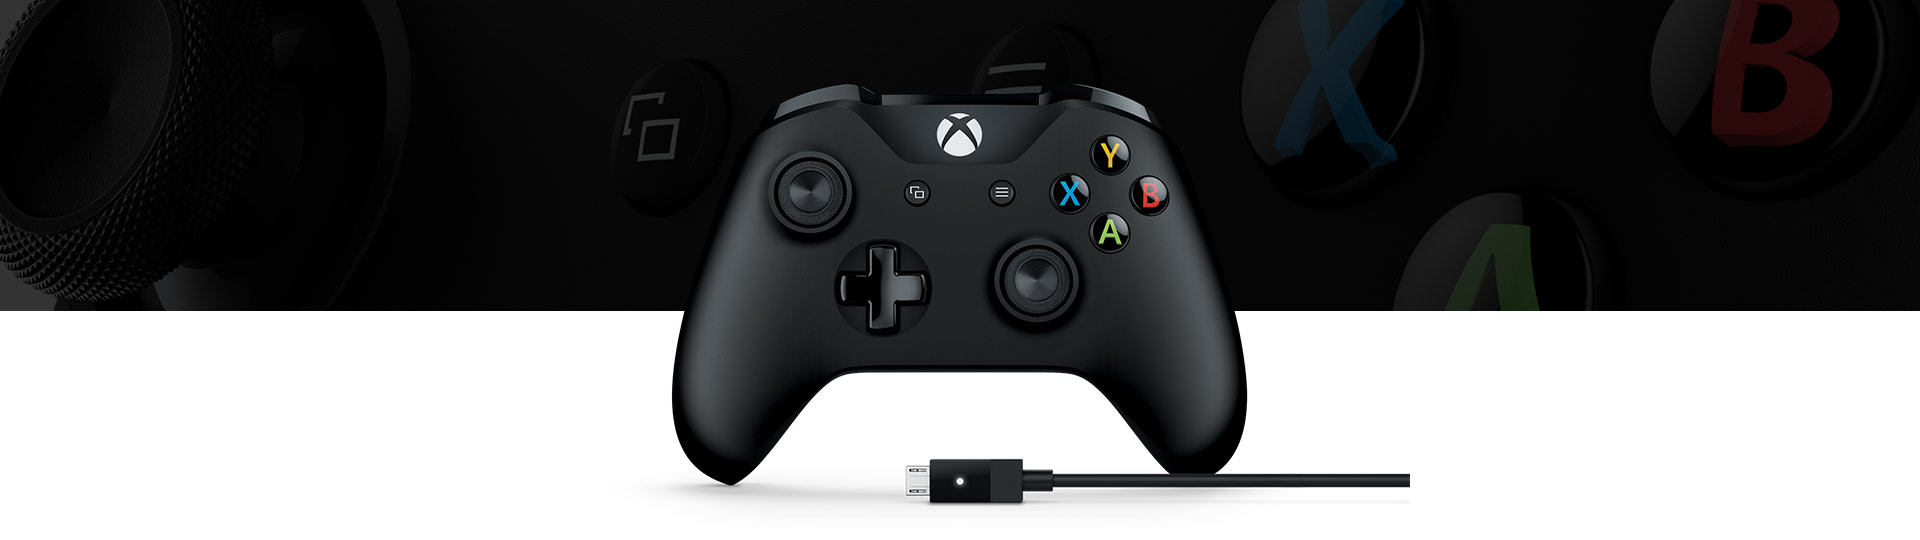 Control Xbox más cable para Windows